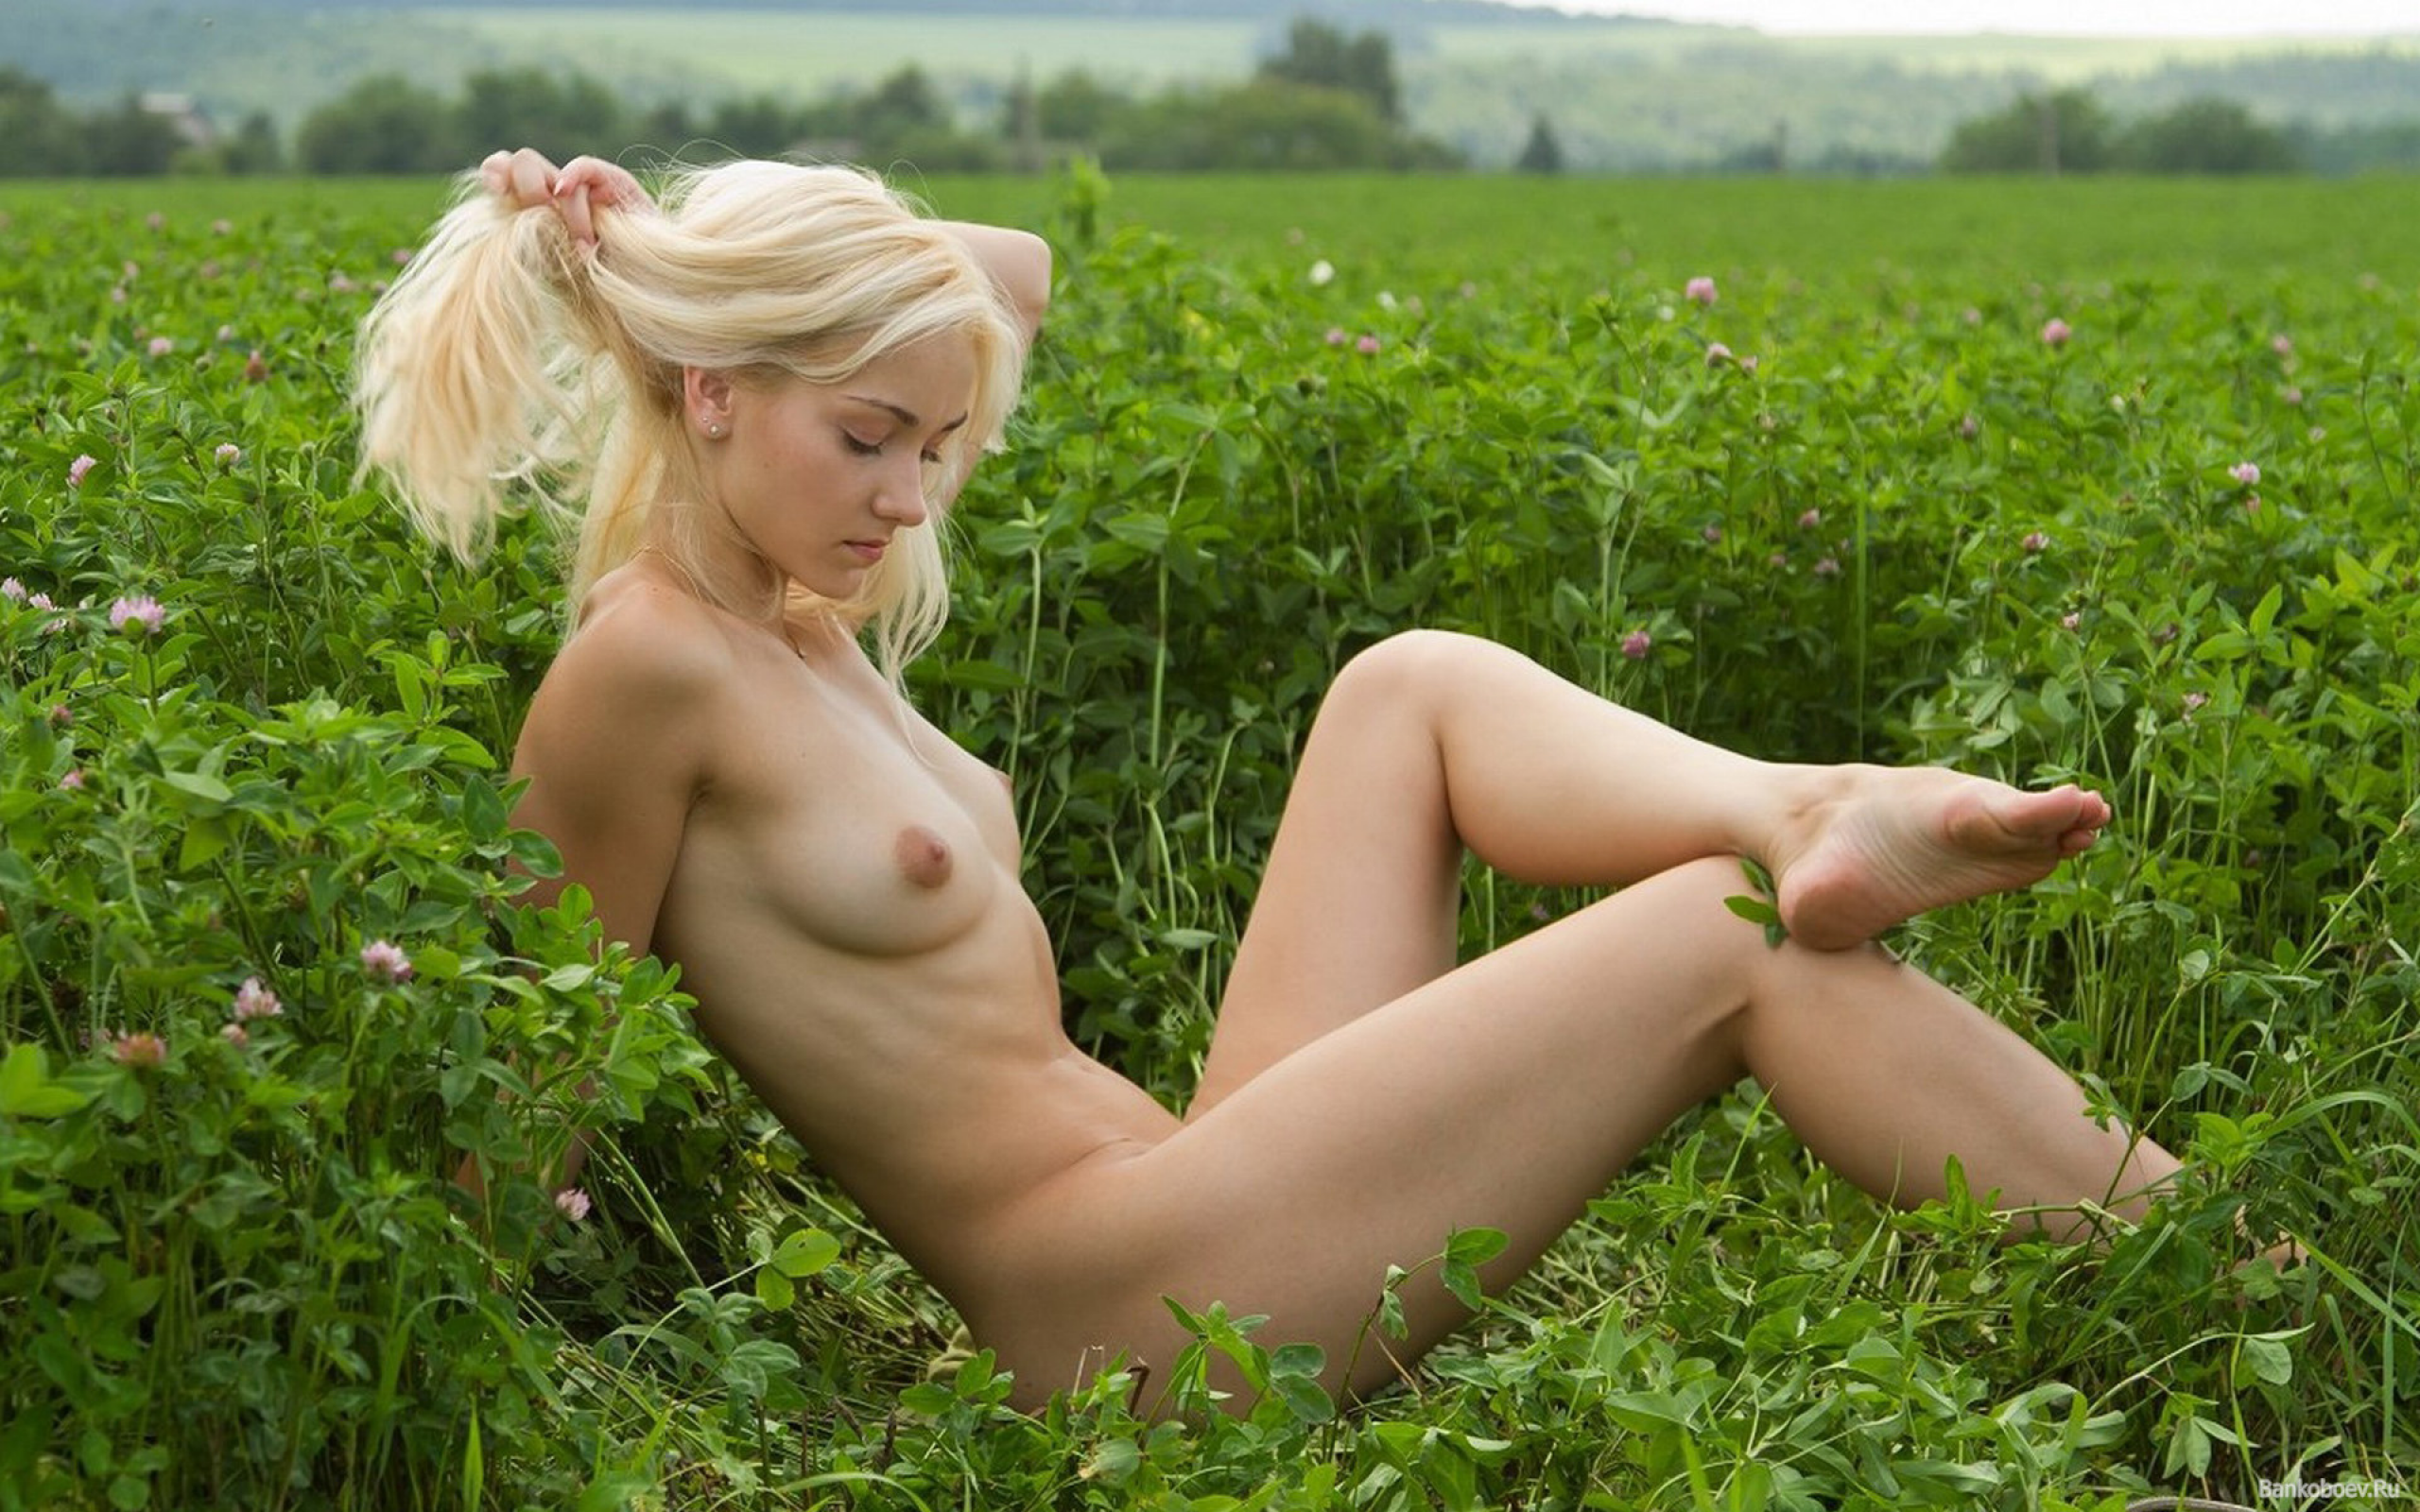 unknown girl naked photo